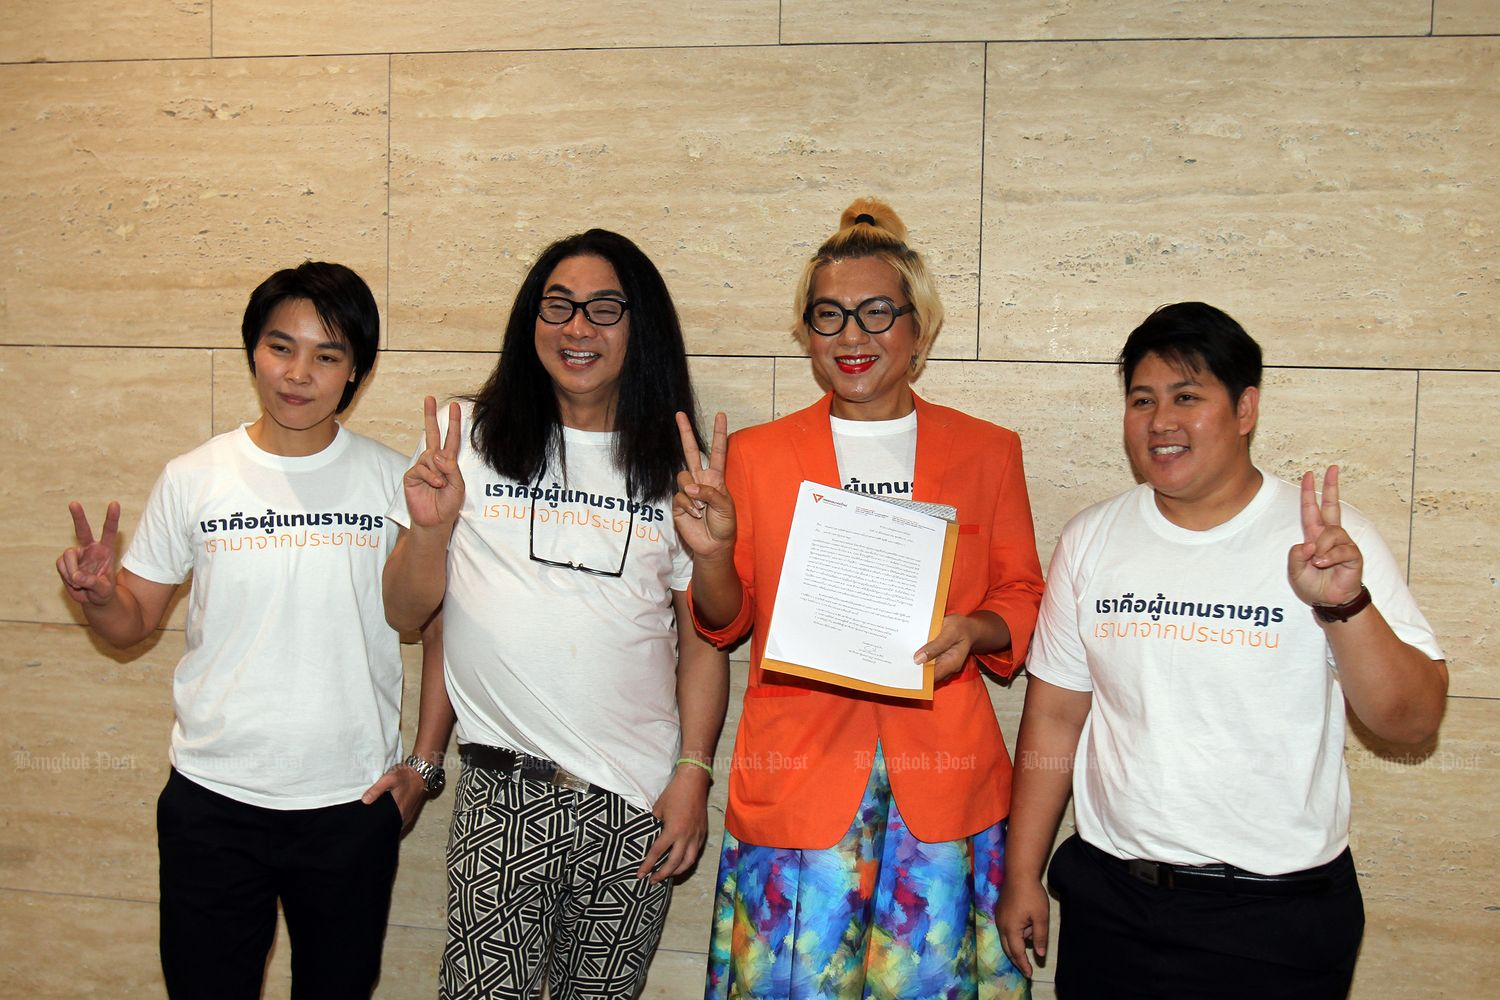 In this May 13 file photo, Kawinnath Takey (right) joins other LGBT MPs of the Future Forward Party — (from left) Nateepat Kulsetthasith,Tunyawaj Kamolwongwat, Tanwarin Sukkhapisit) — in submitting a letter to the House speaker seeking a permission to dress according to their gender identity at Parliament in Bangkok. (Photo by Tawatchai Kemgumnerd)